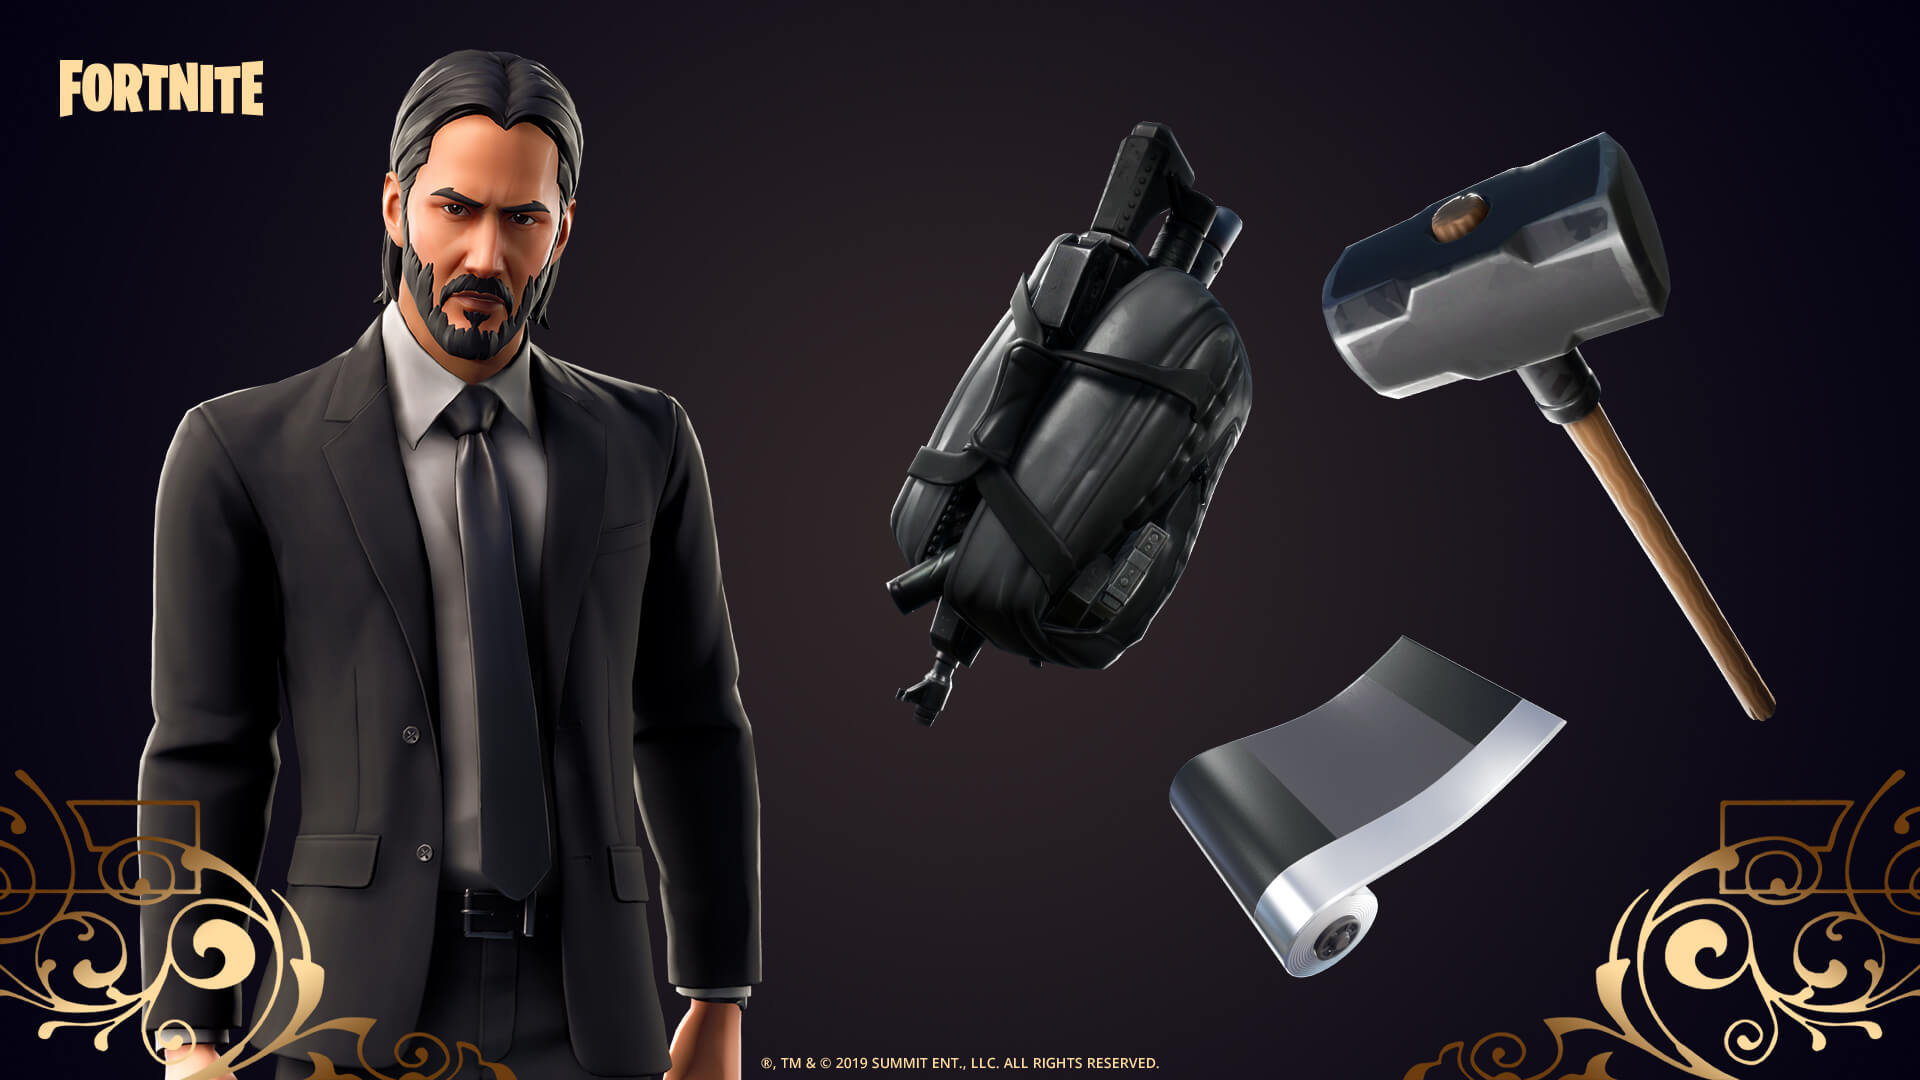 John Wick' Officially Hits 'Fortnite' in Latest In-Game